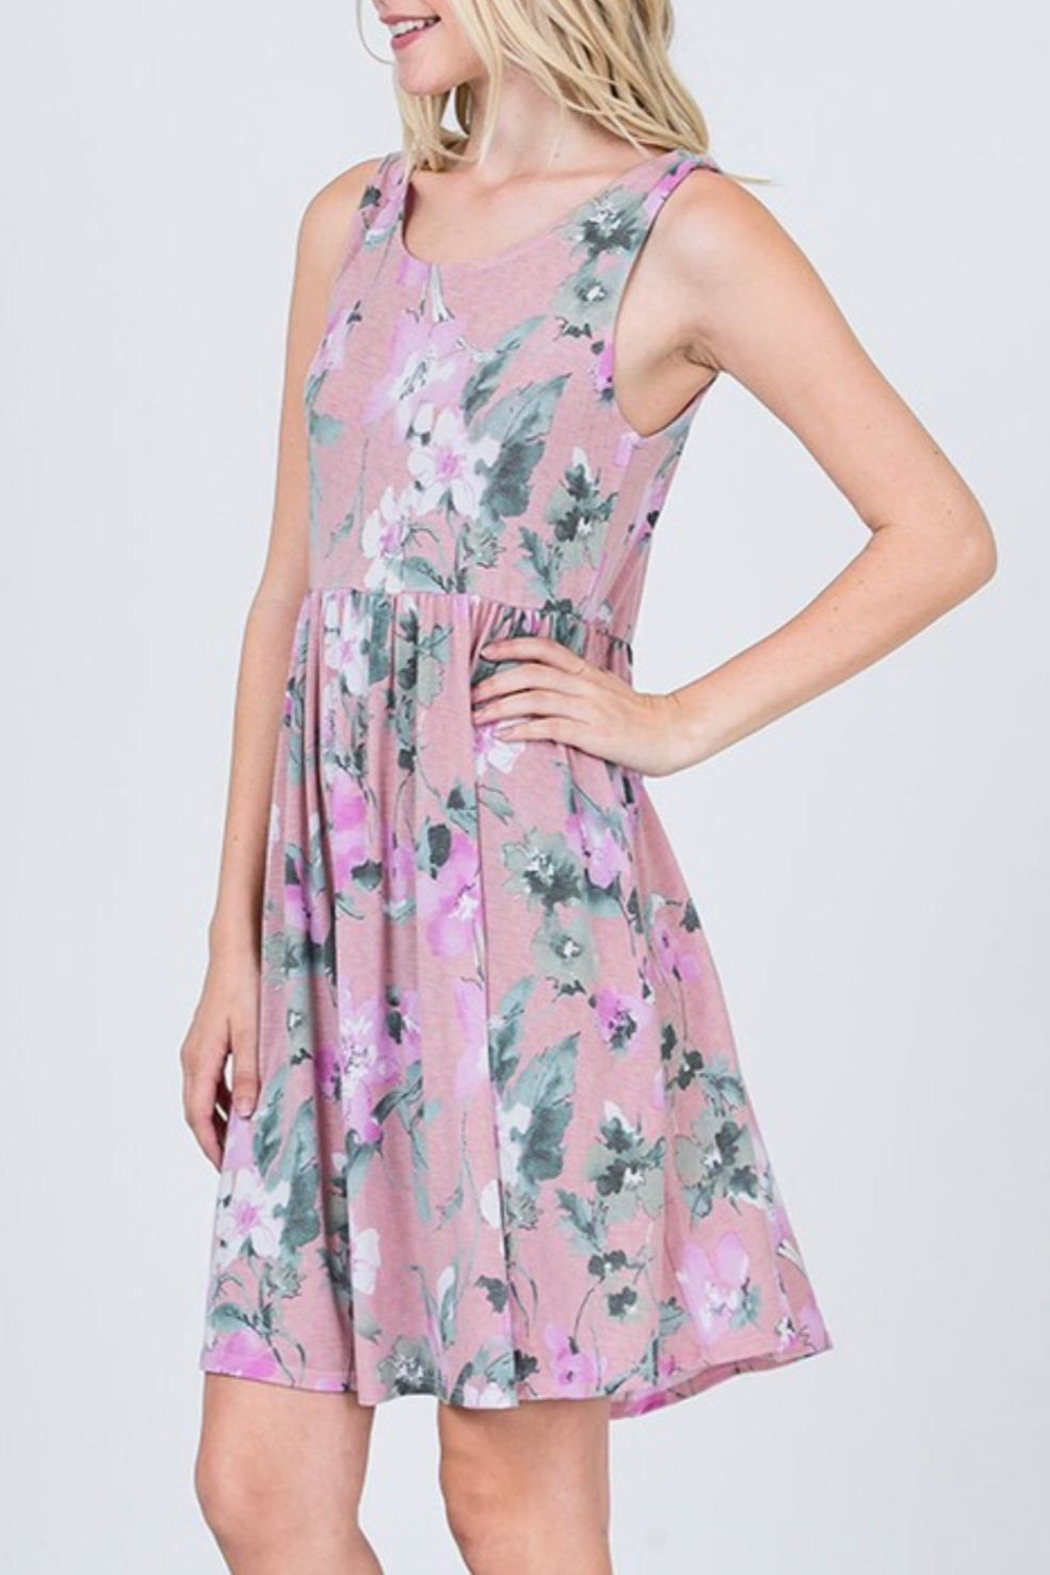 CY Fashion Lavender Floral Dress - Side Cropped Image